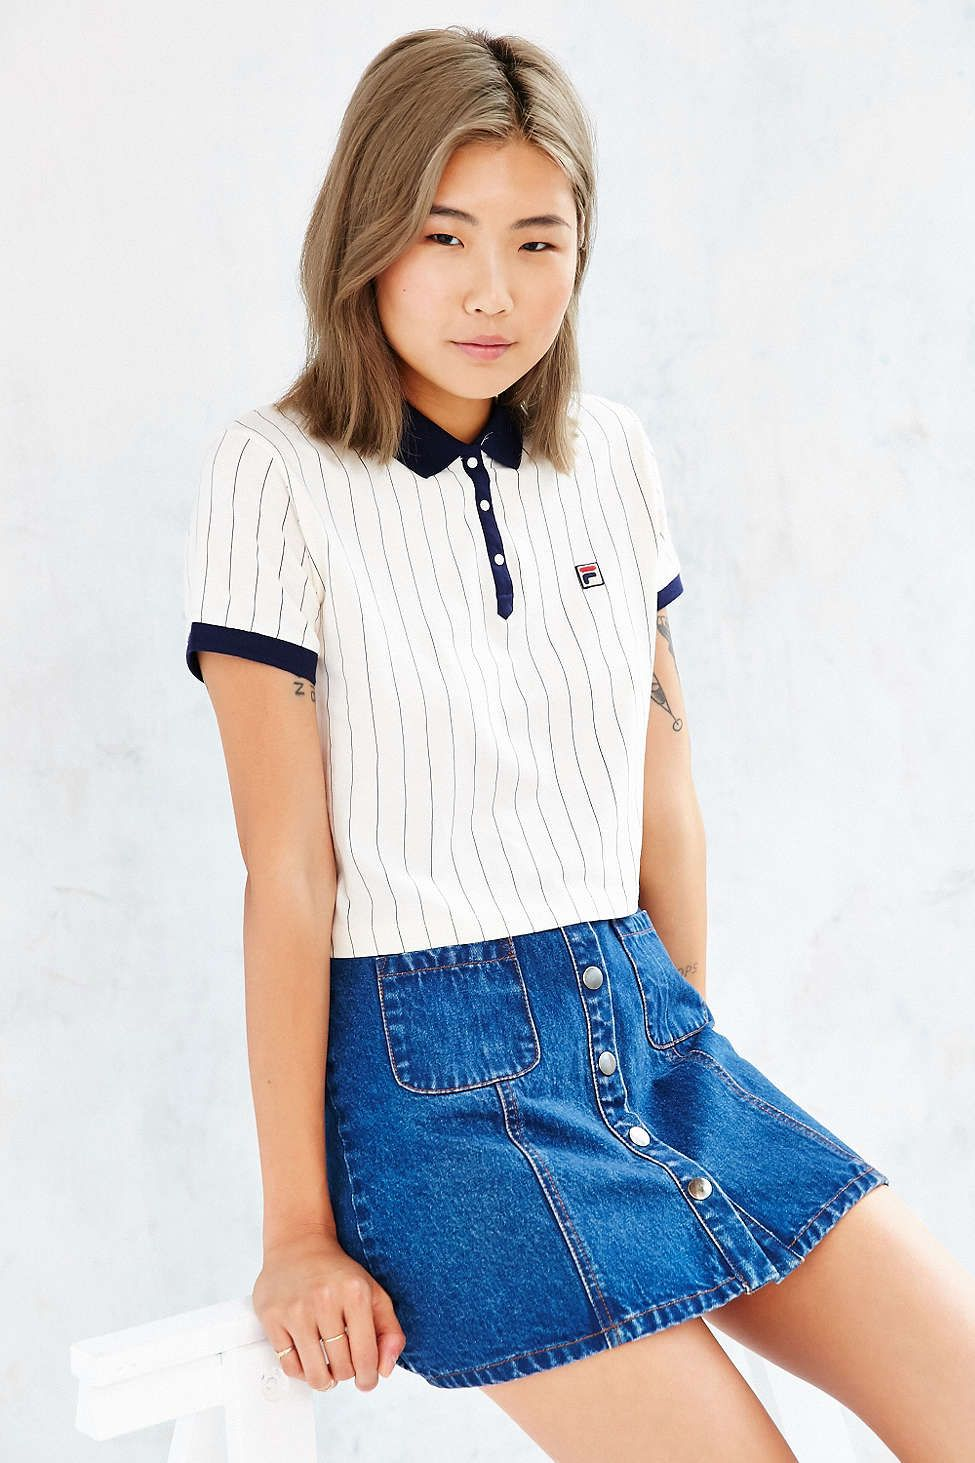 FILA + UO Polo Shirt | Good Sport | Polo shirt outfits, Polo ...